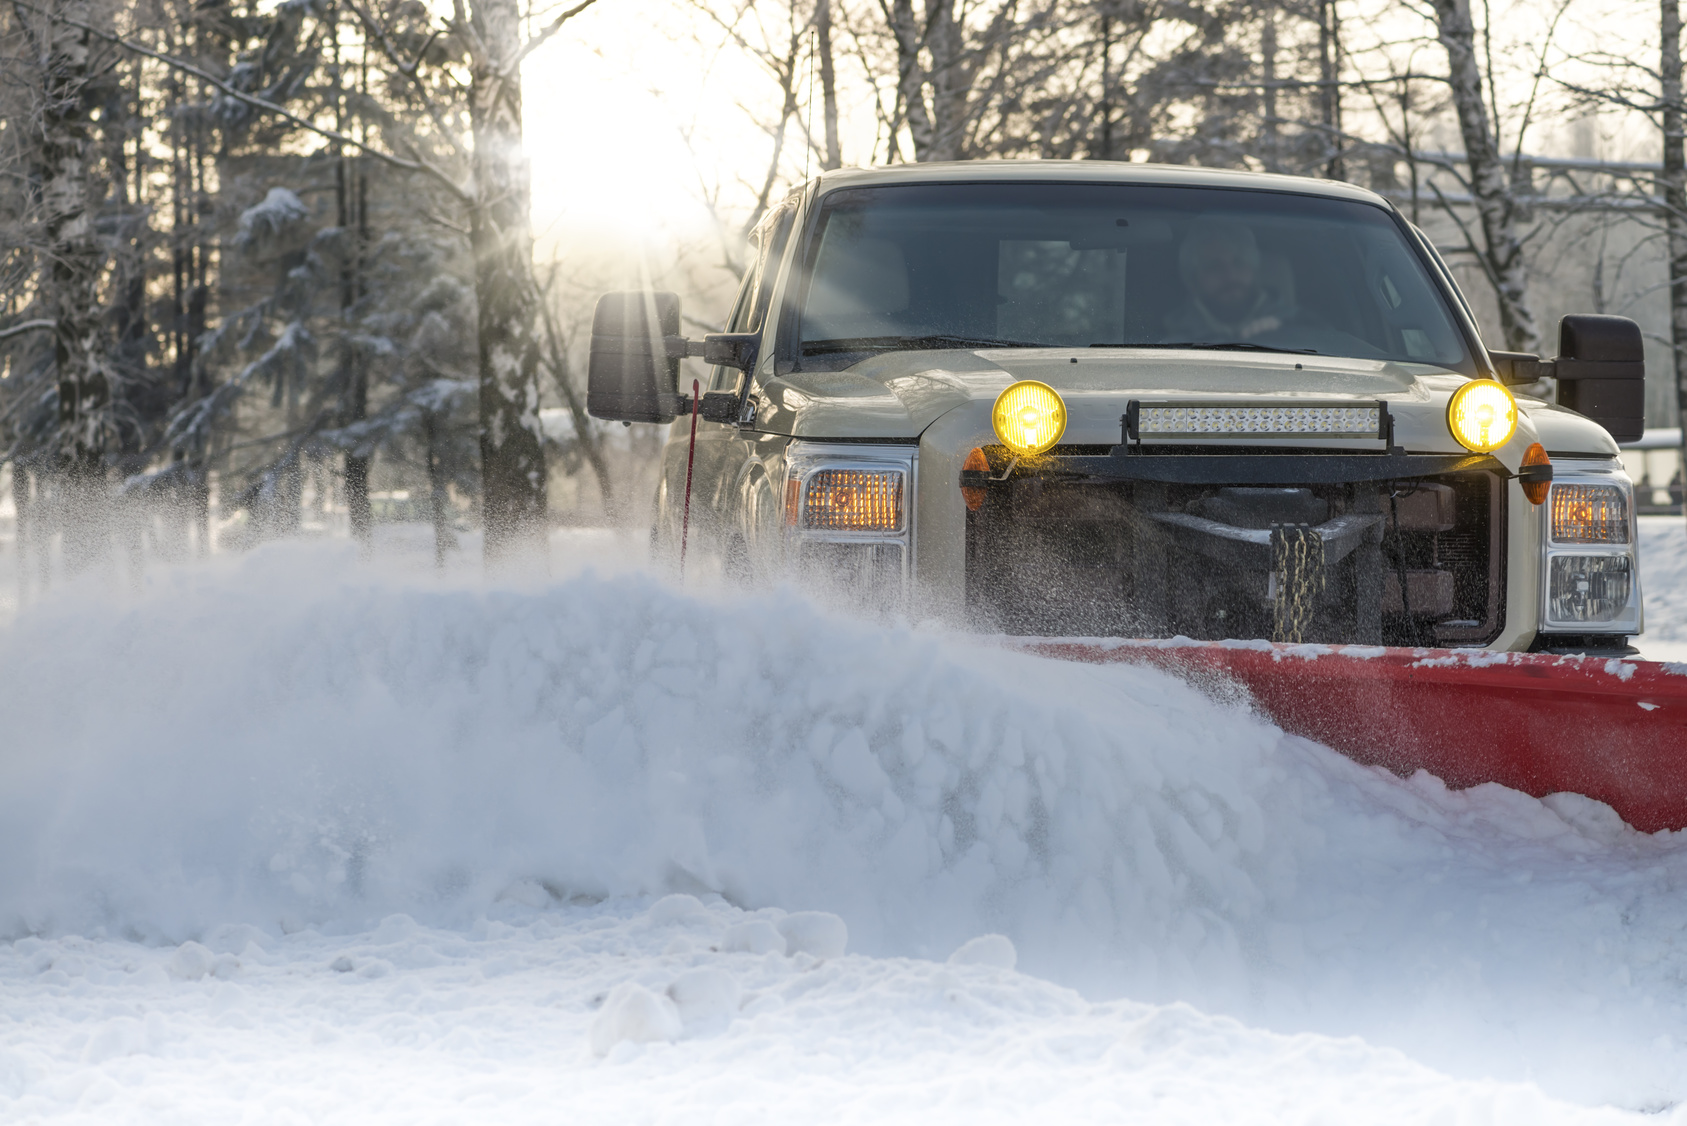 Snow plow doing snow removal after a blizzard